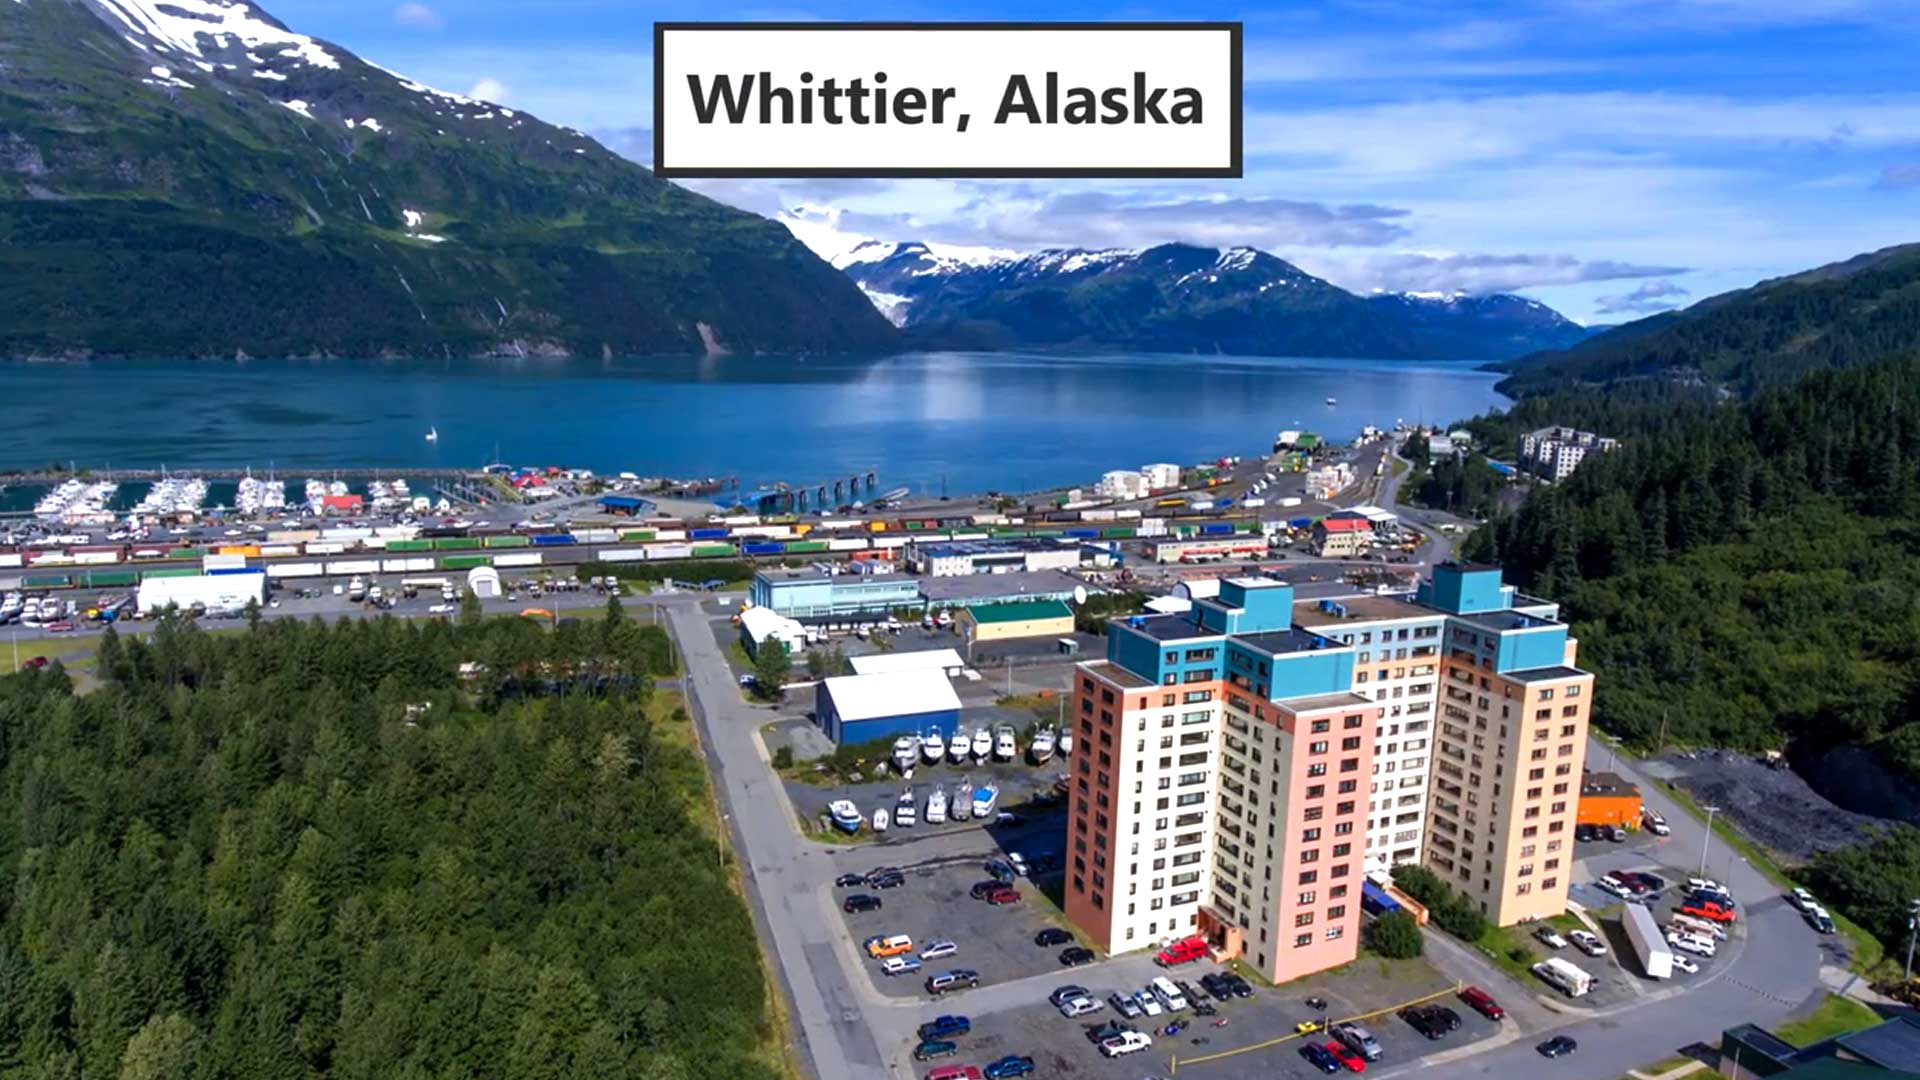 The One Building City Of Whittier, Alaska.